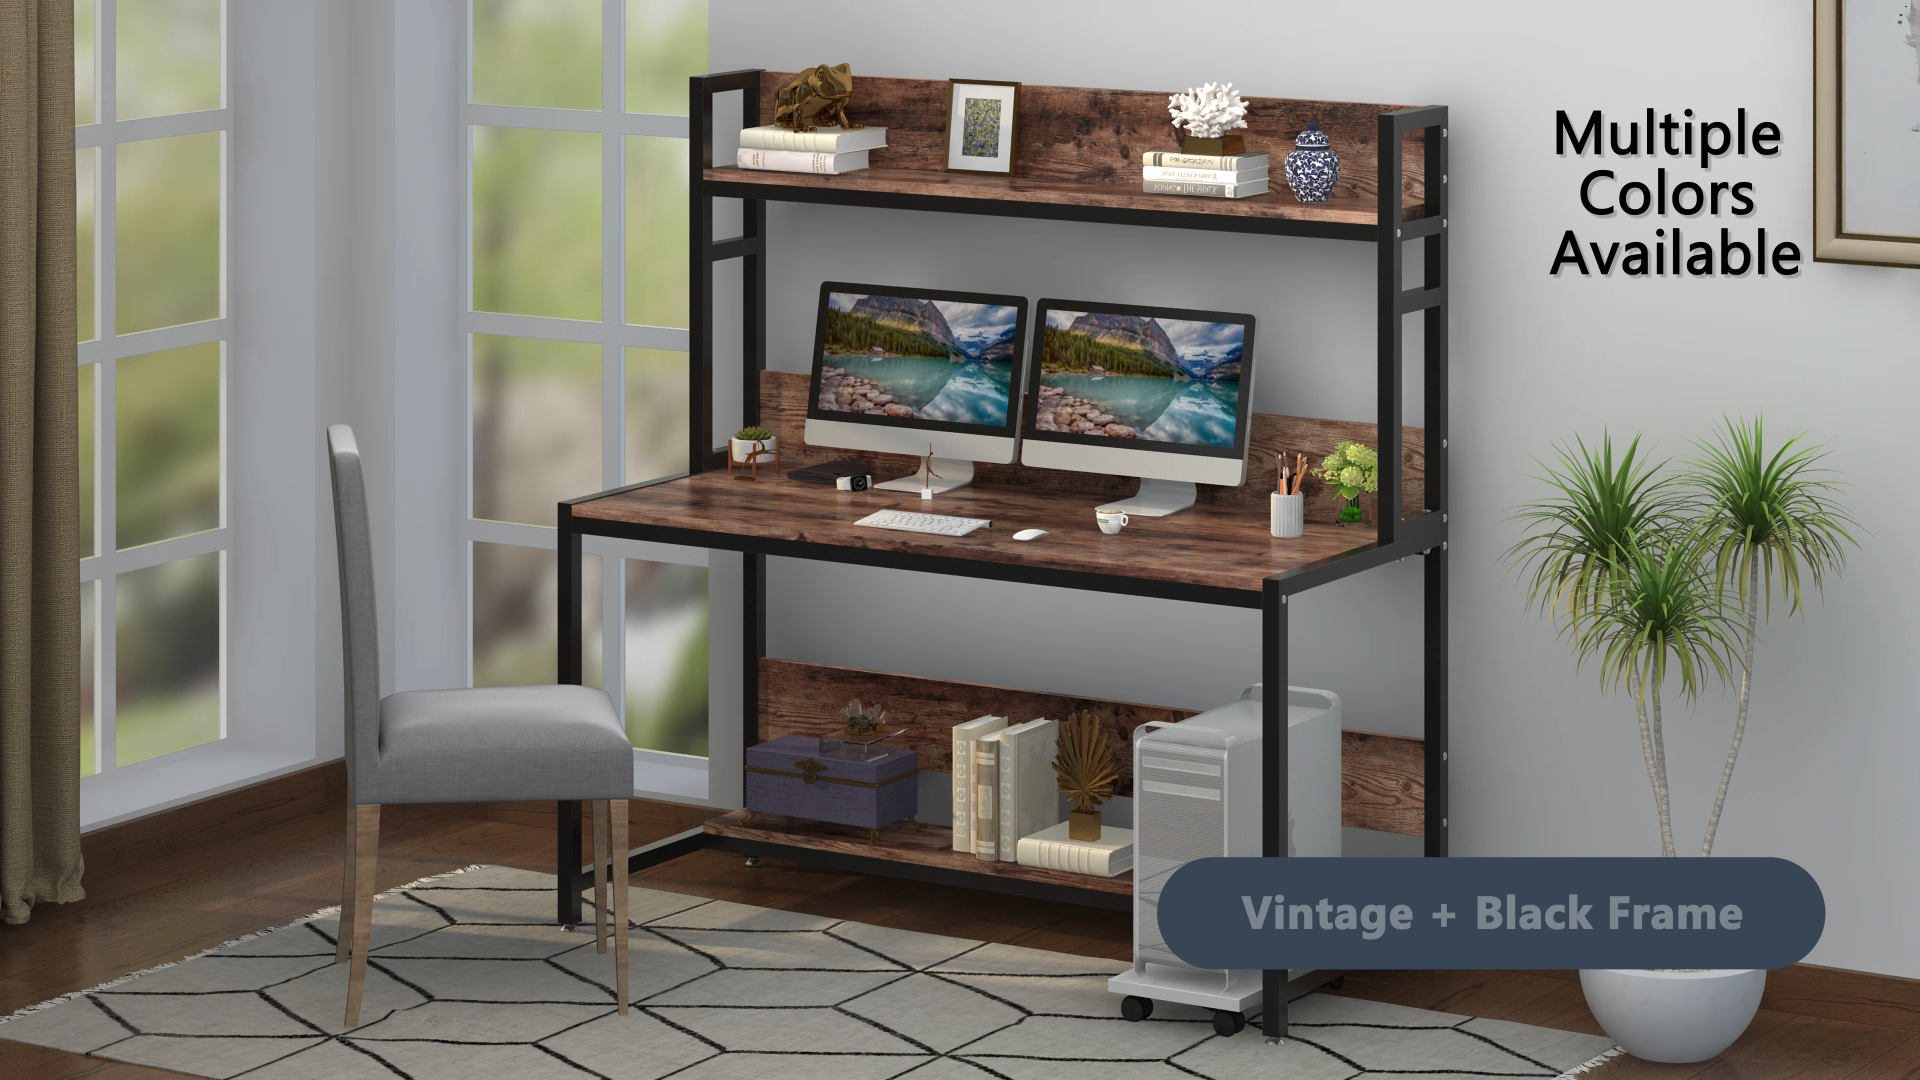 Large Computer Desk, Modern Writing Desk w/Bookshe